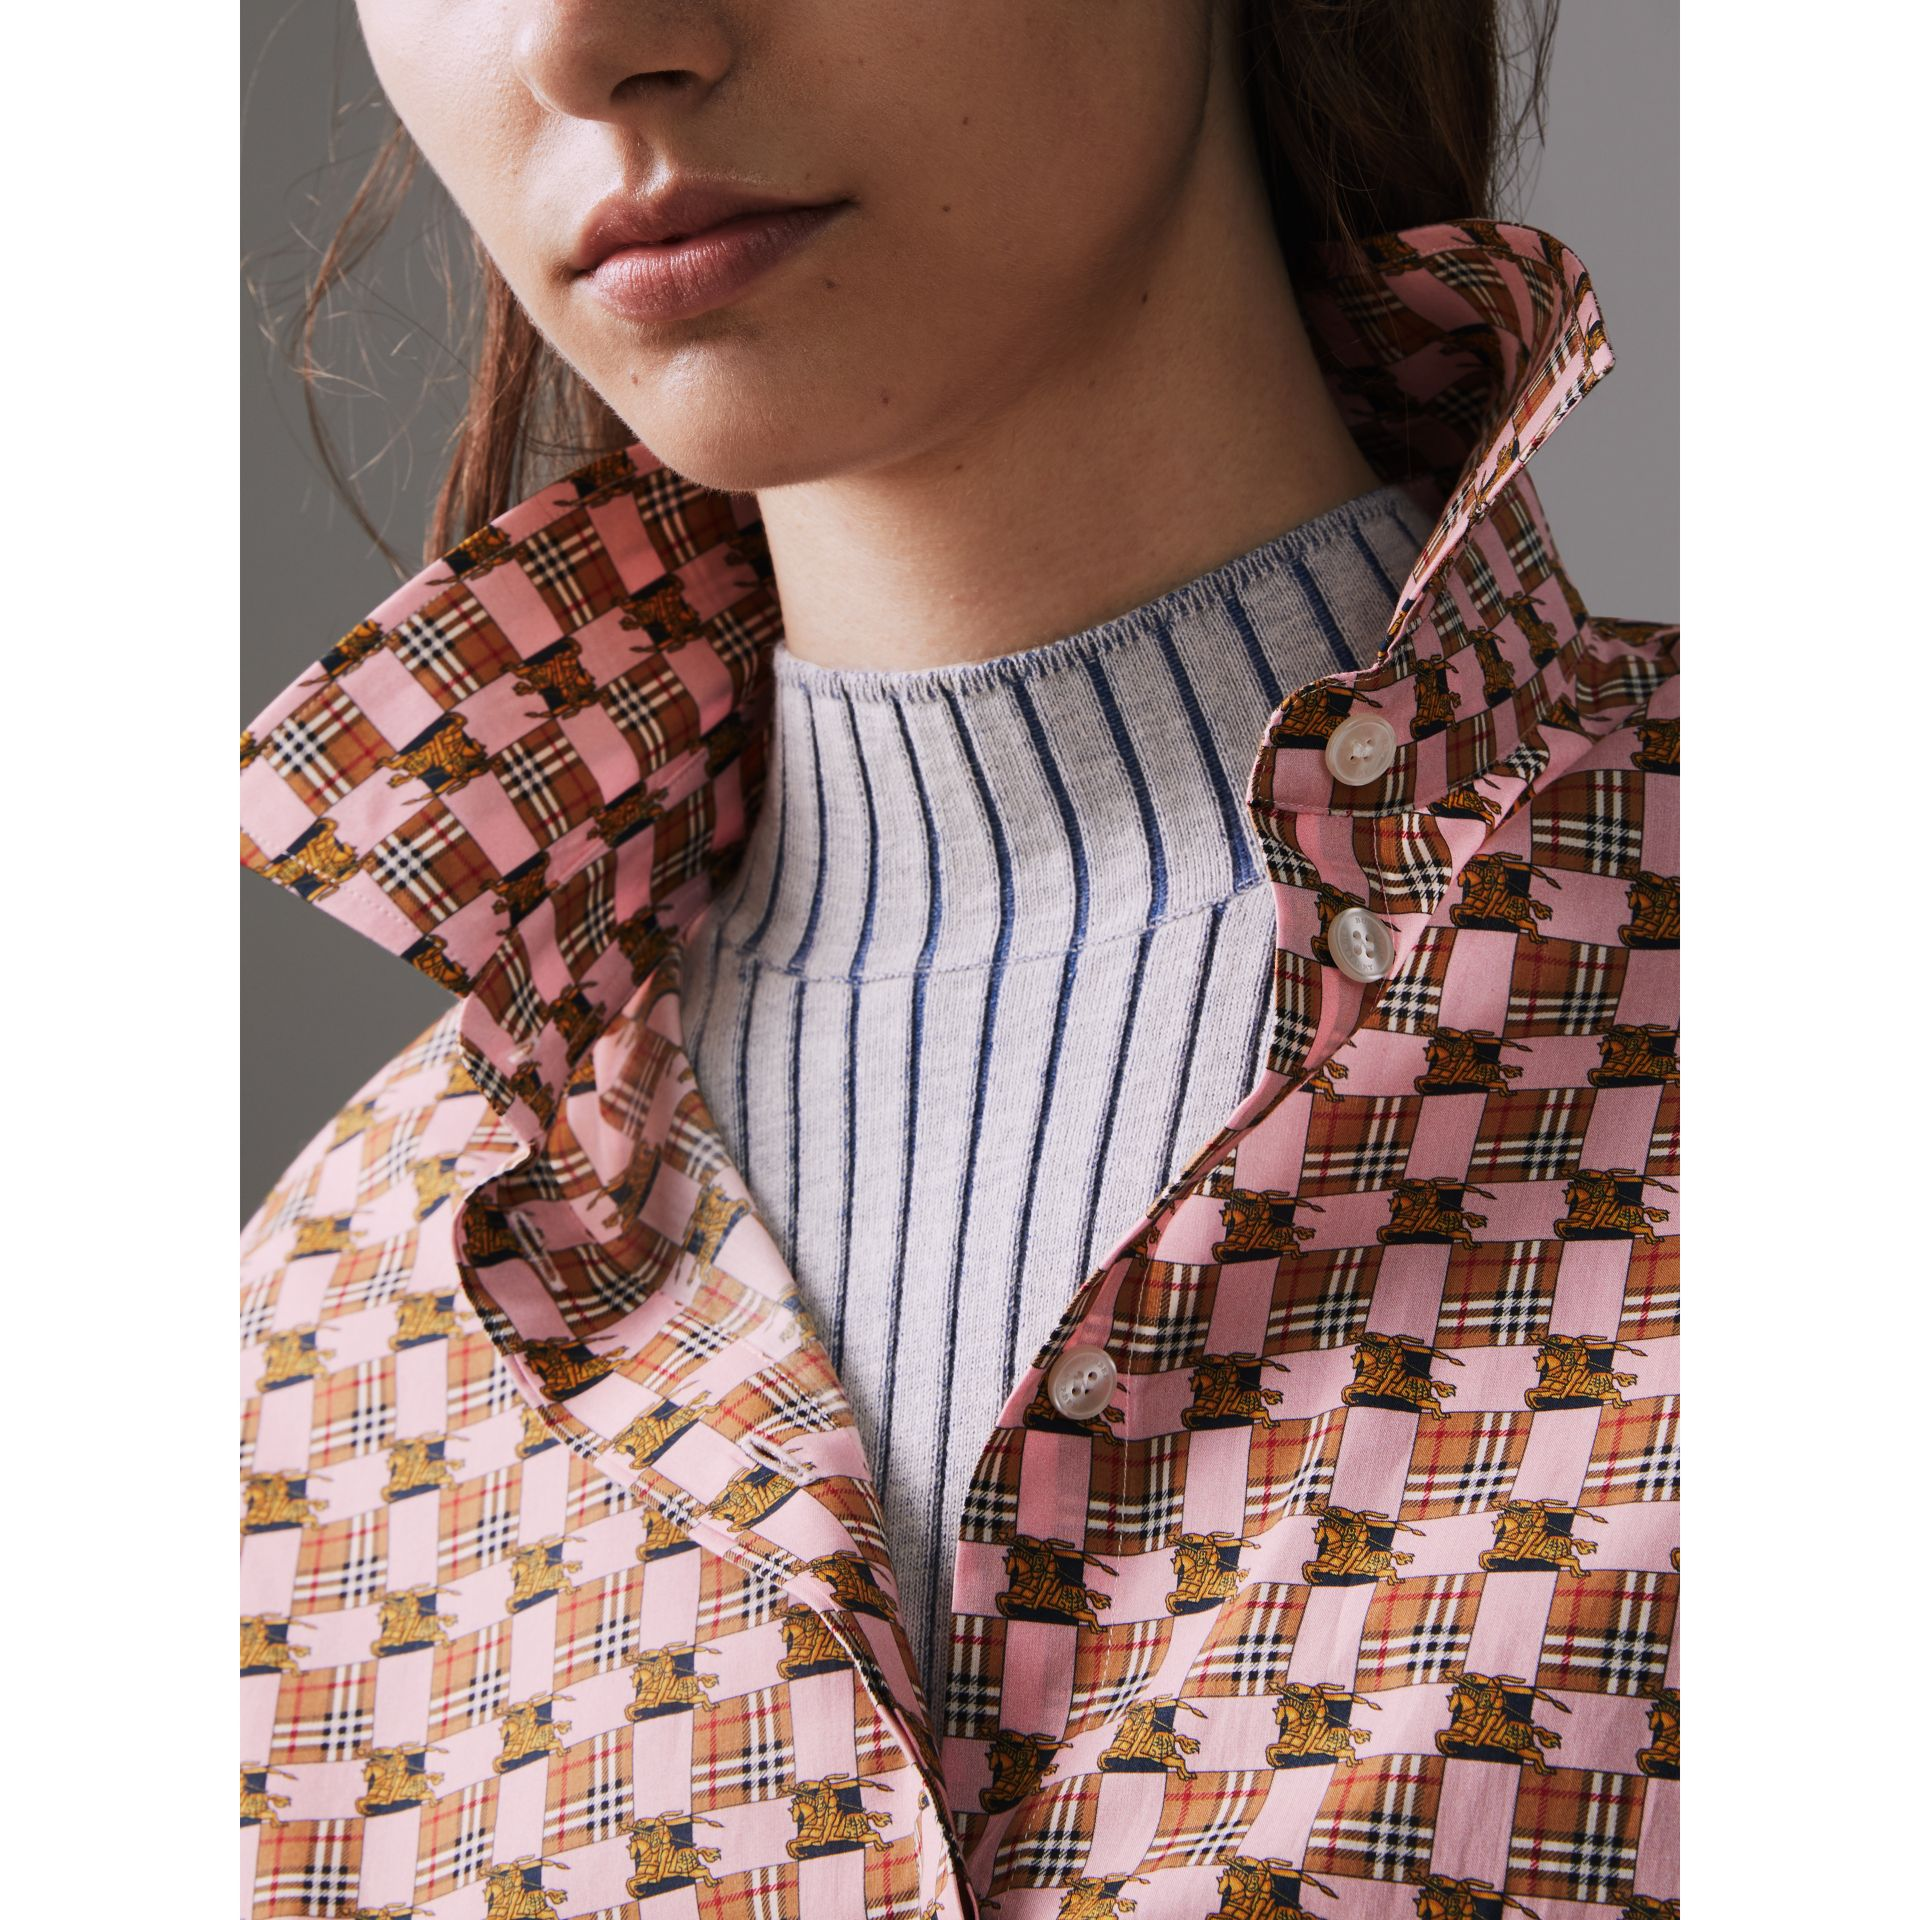 Tiled Archive Print Cotton Shirt in Pink - Women | Burberry - gallery image 1